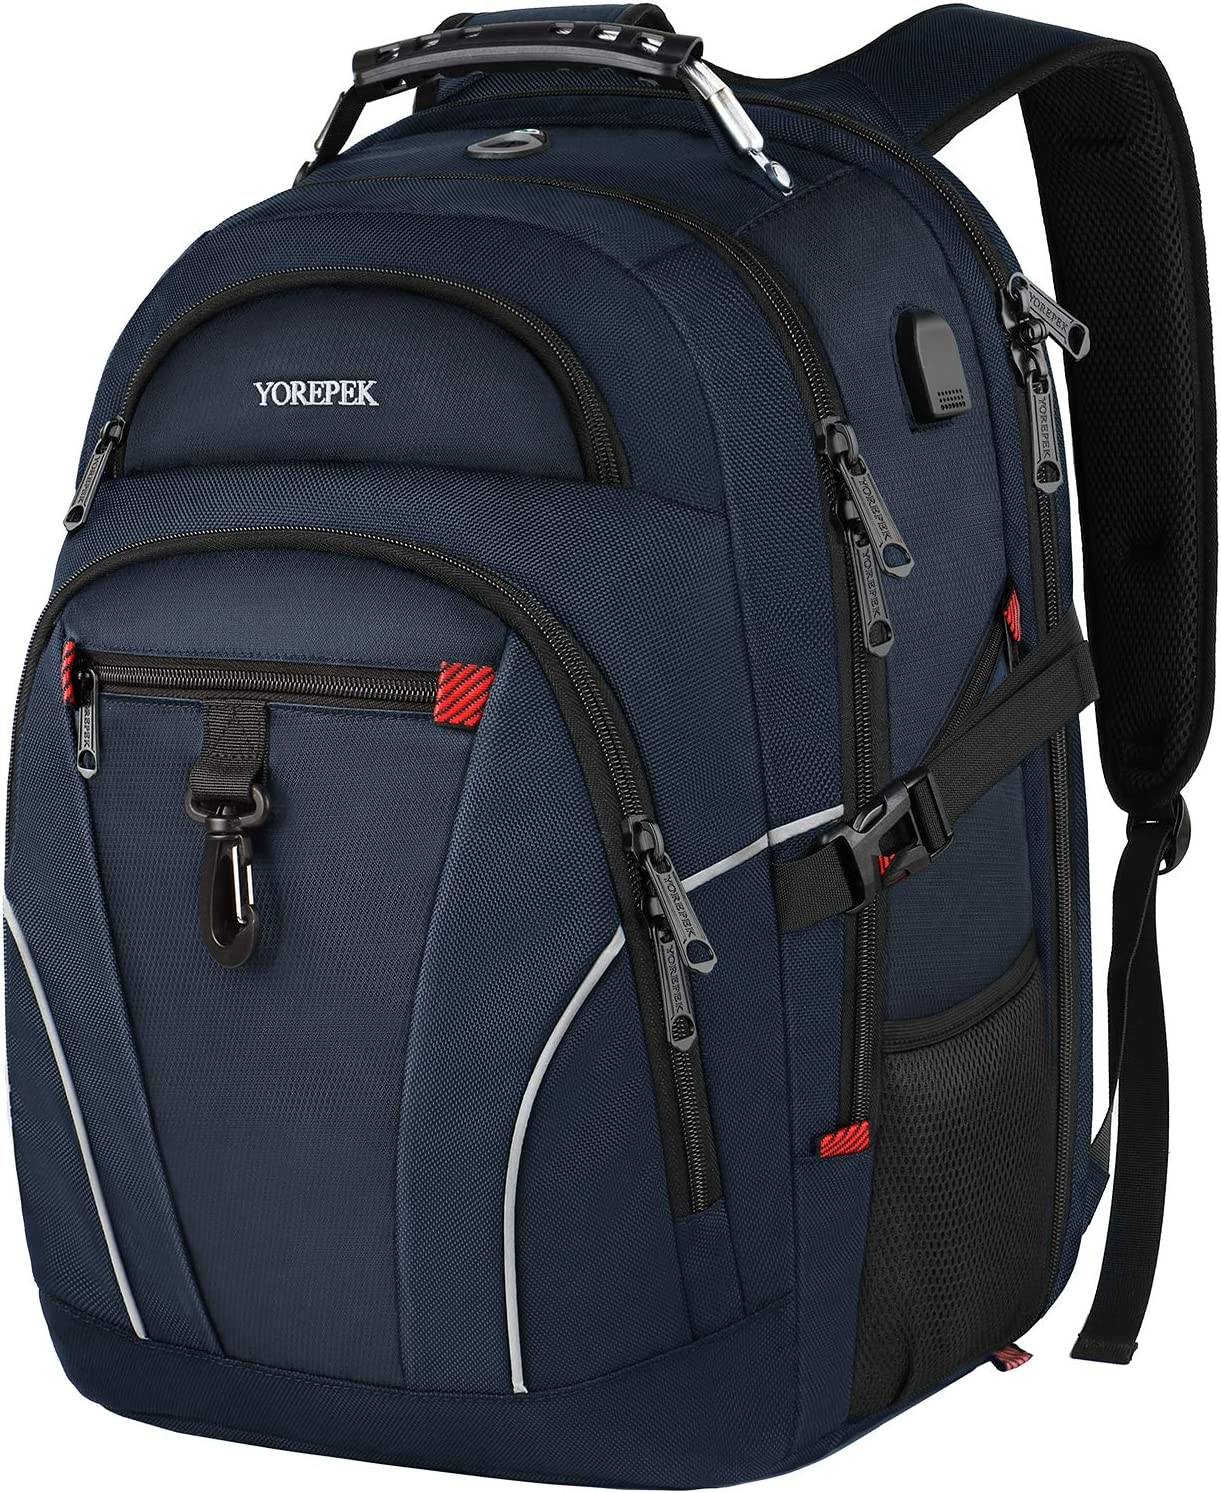 Large Laptop Backpack,Business Travel Durable Laptops Backpack with USB Charging Port,Water Resistant College School Computer Bag for Women and Men Fits 17 Inch Laptop and Notebook,Blue